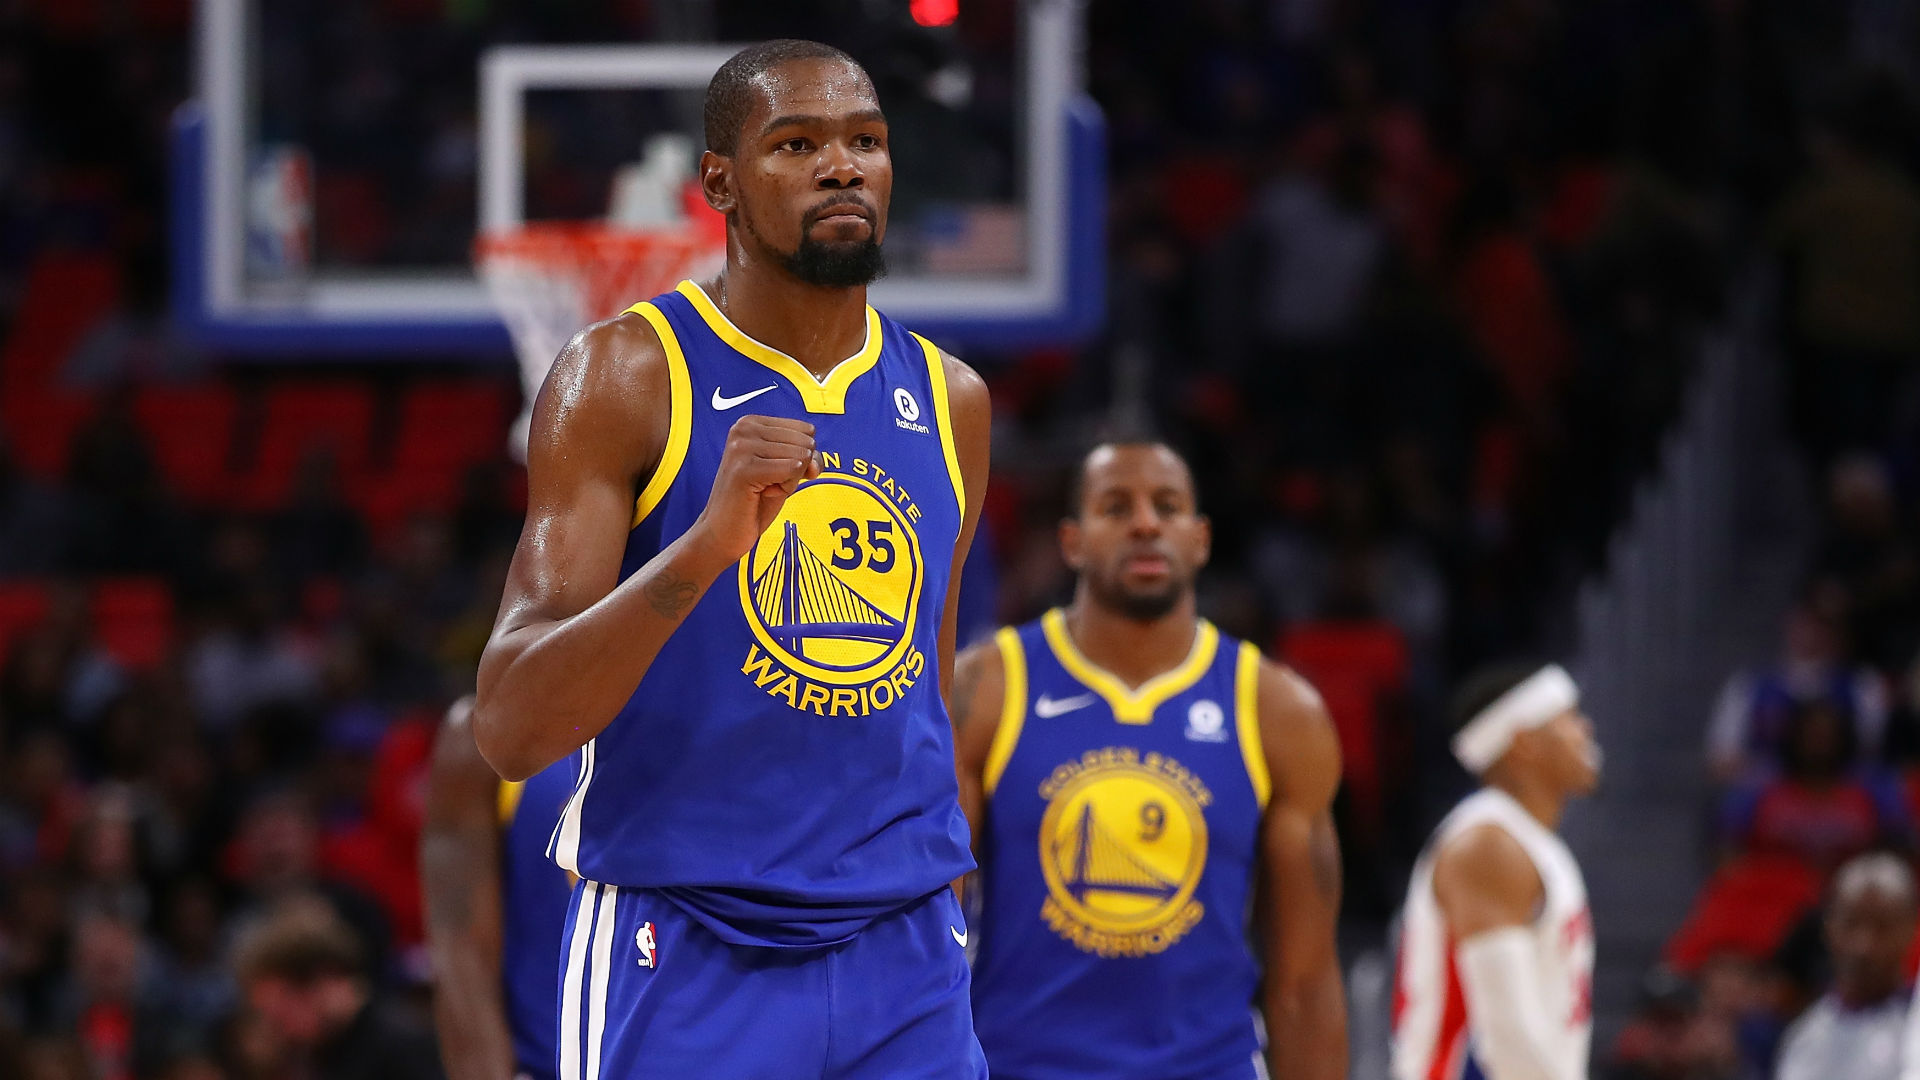 Kevin Durant becomes second-youngest player to score 20000 career points